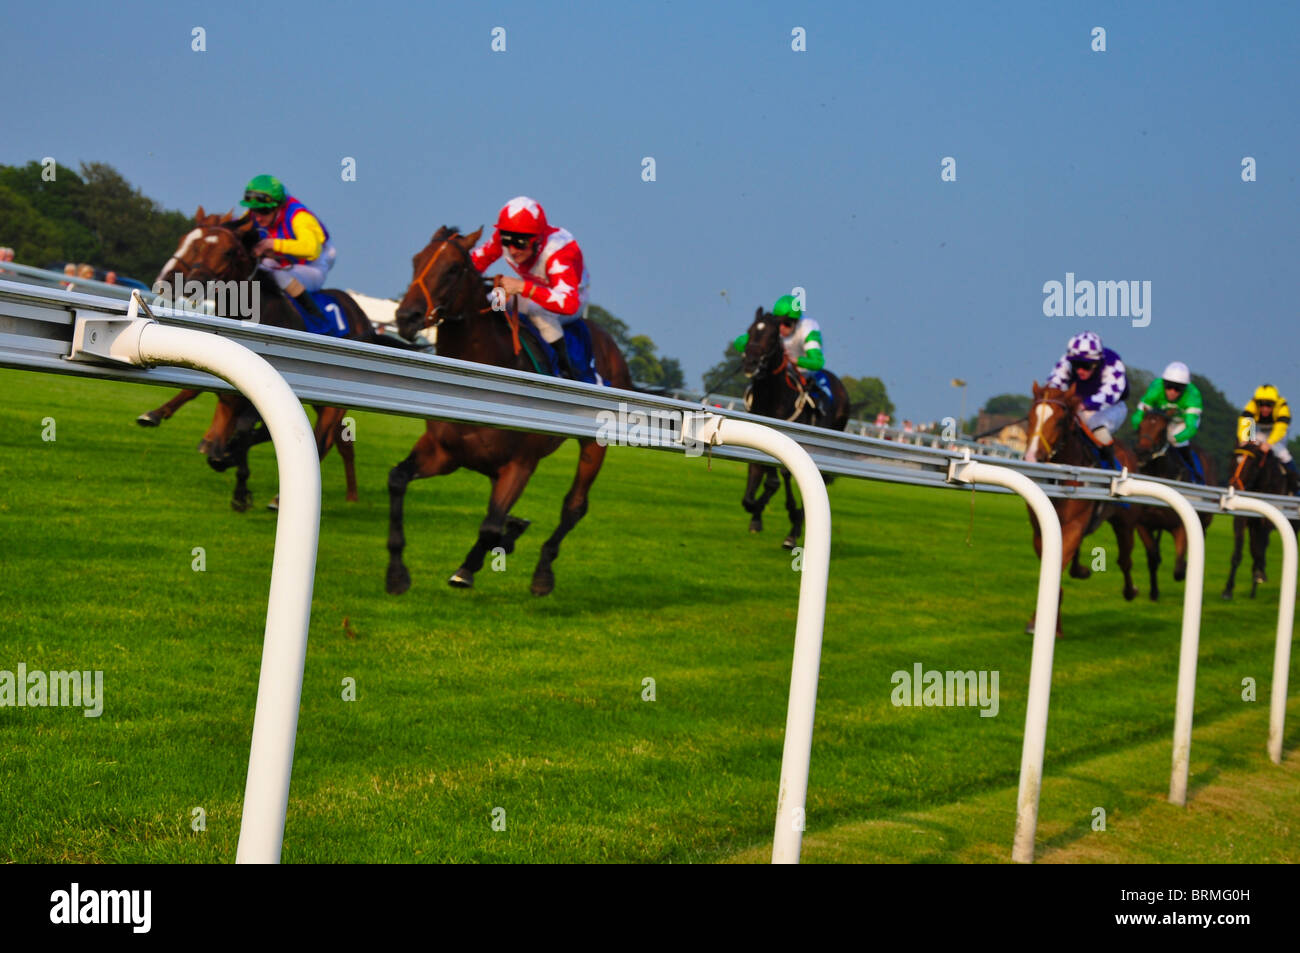 Horse racing at the famous racecourse of Epsom - Stock Image